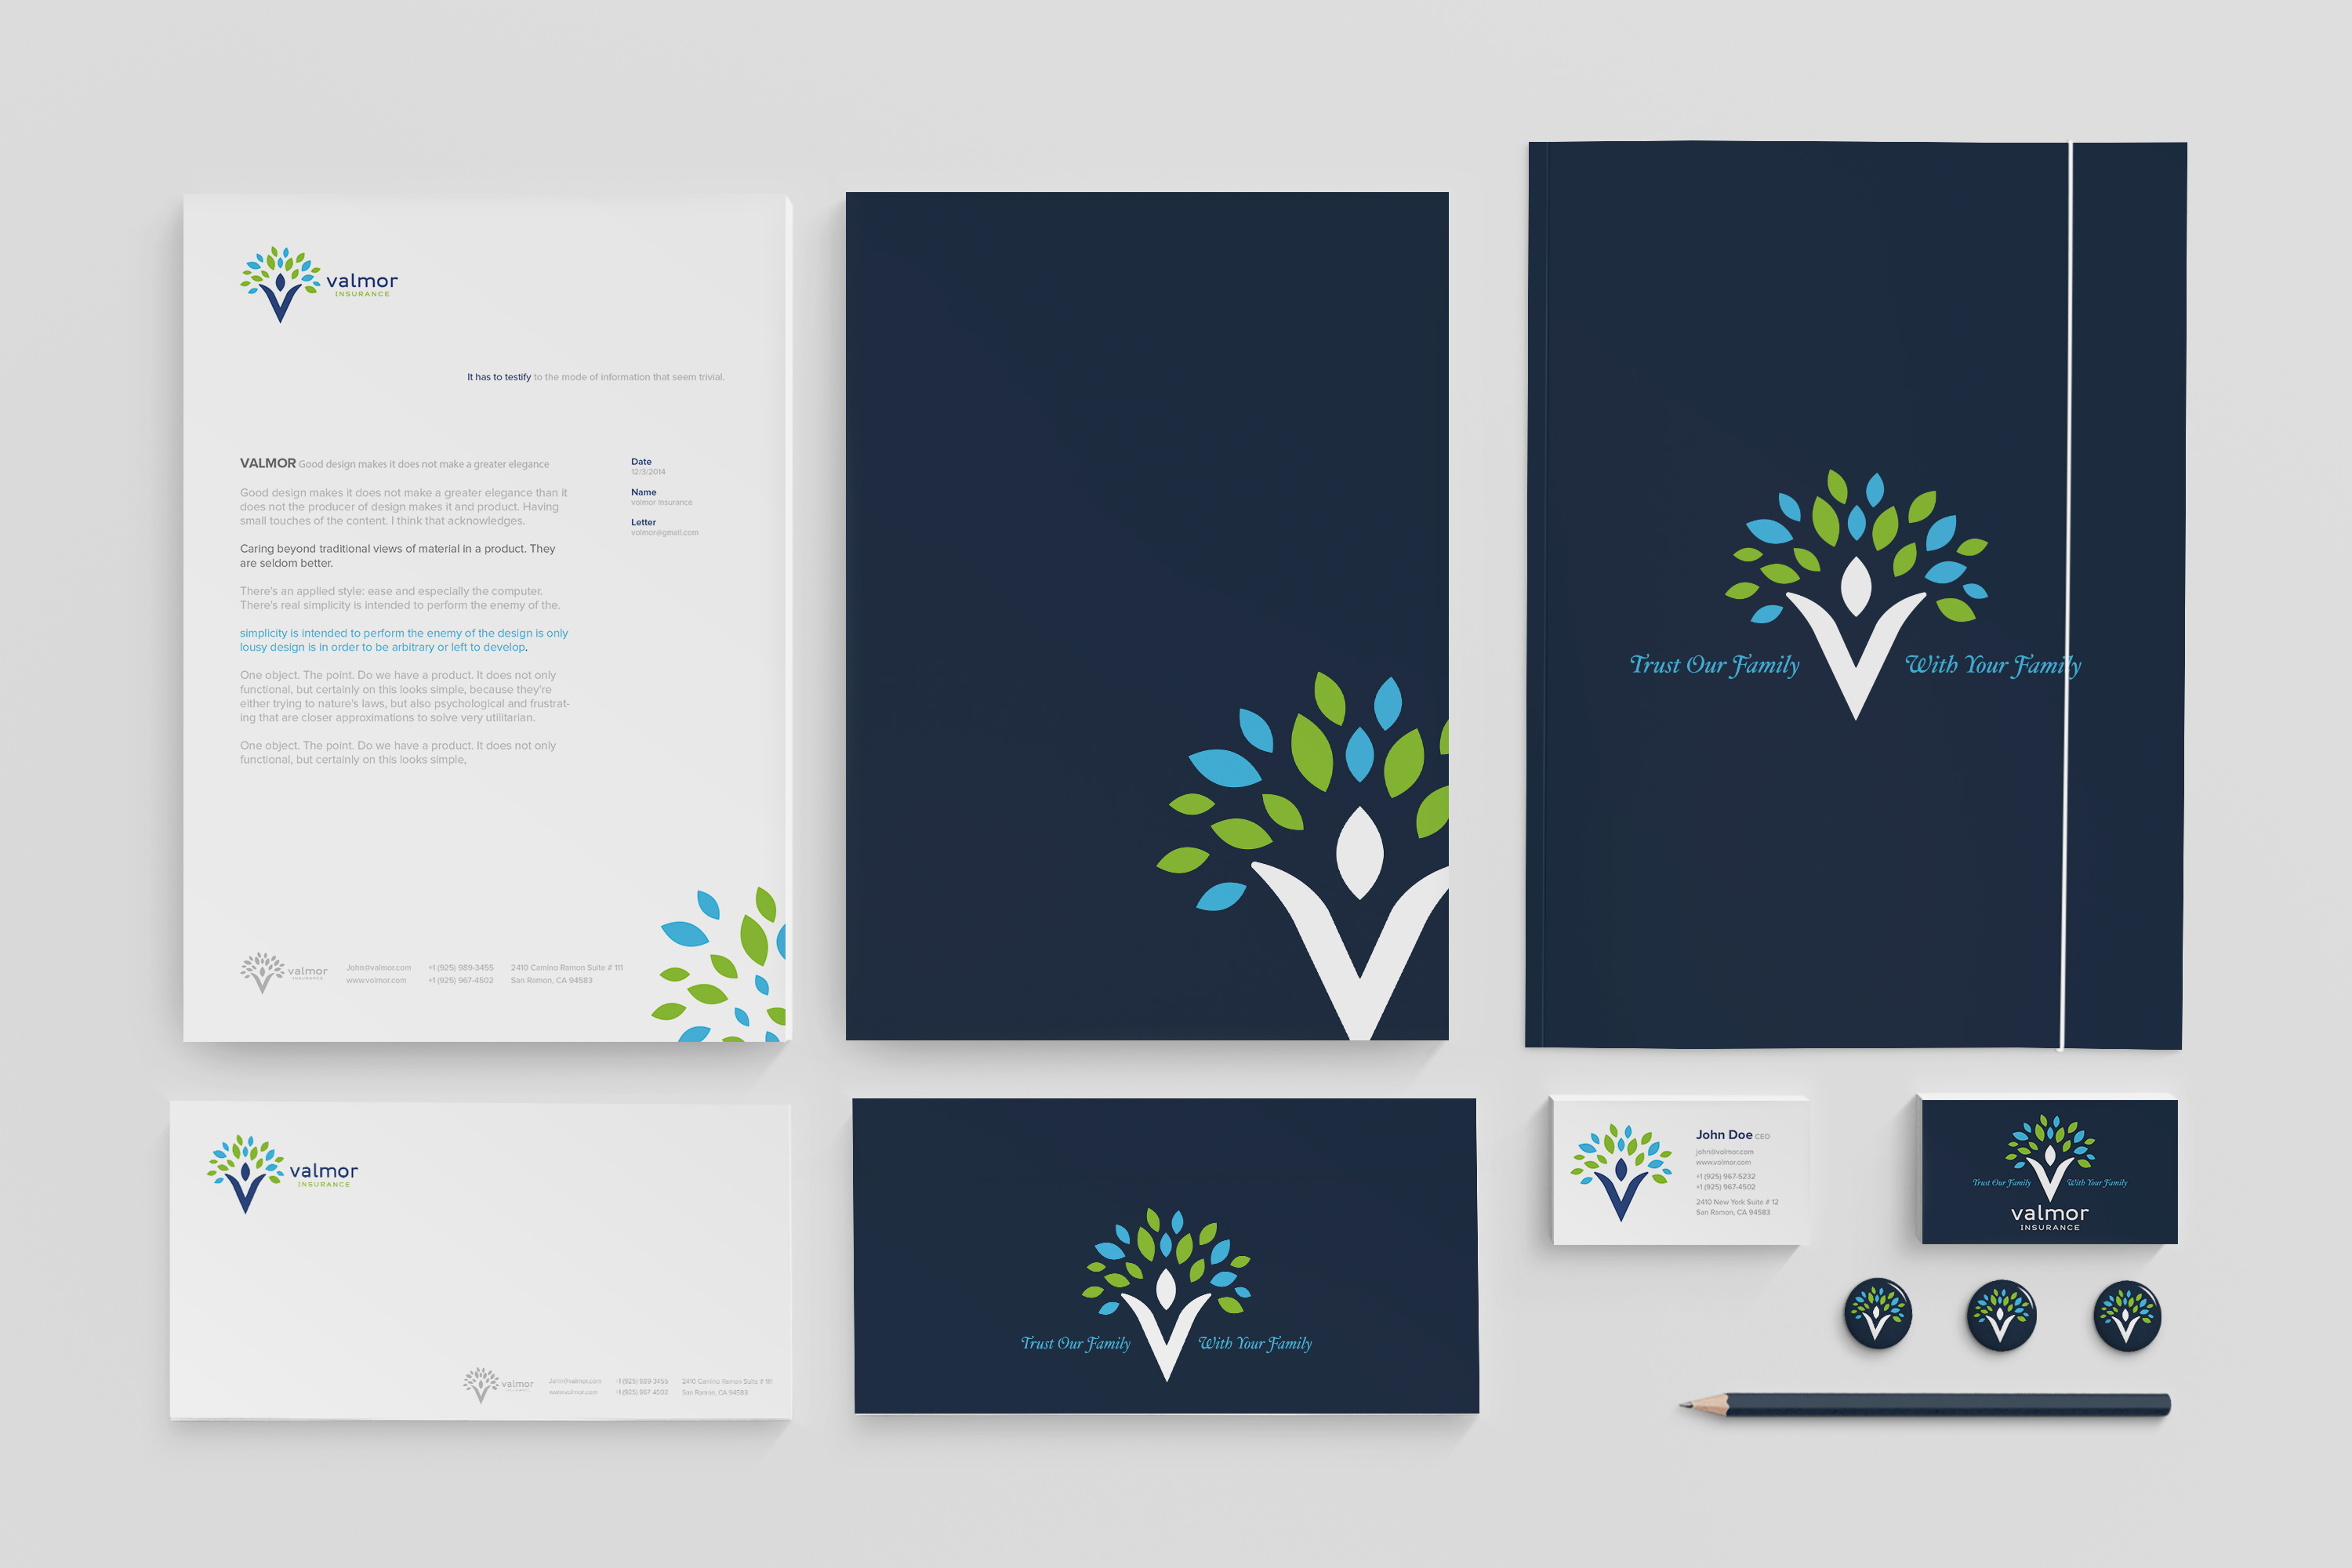 Valmor-Stationery-01